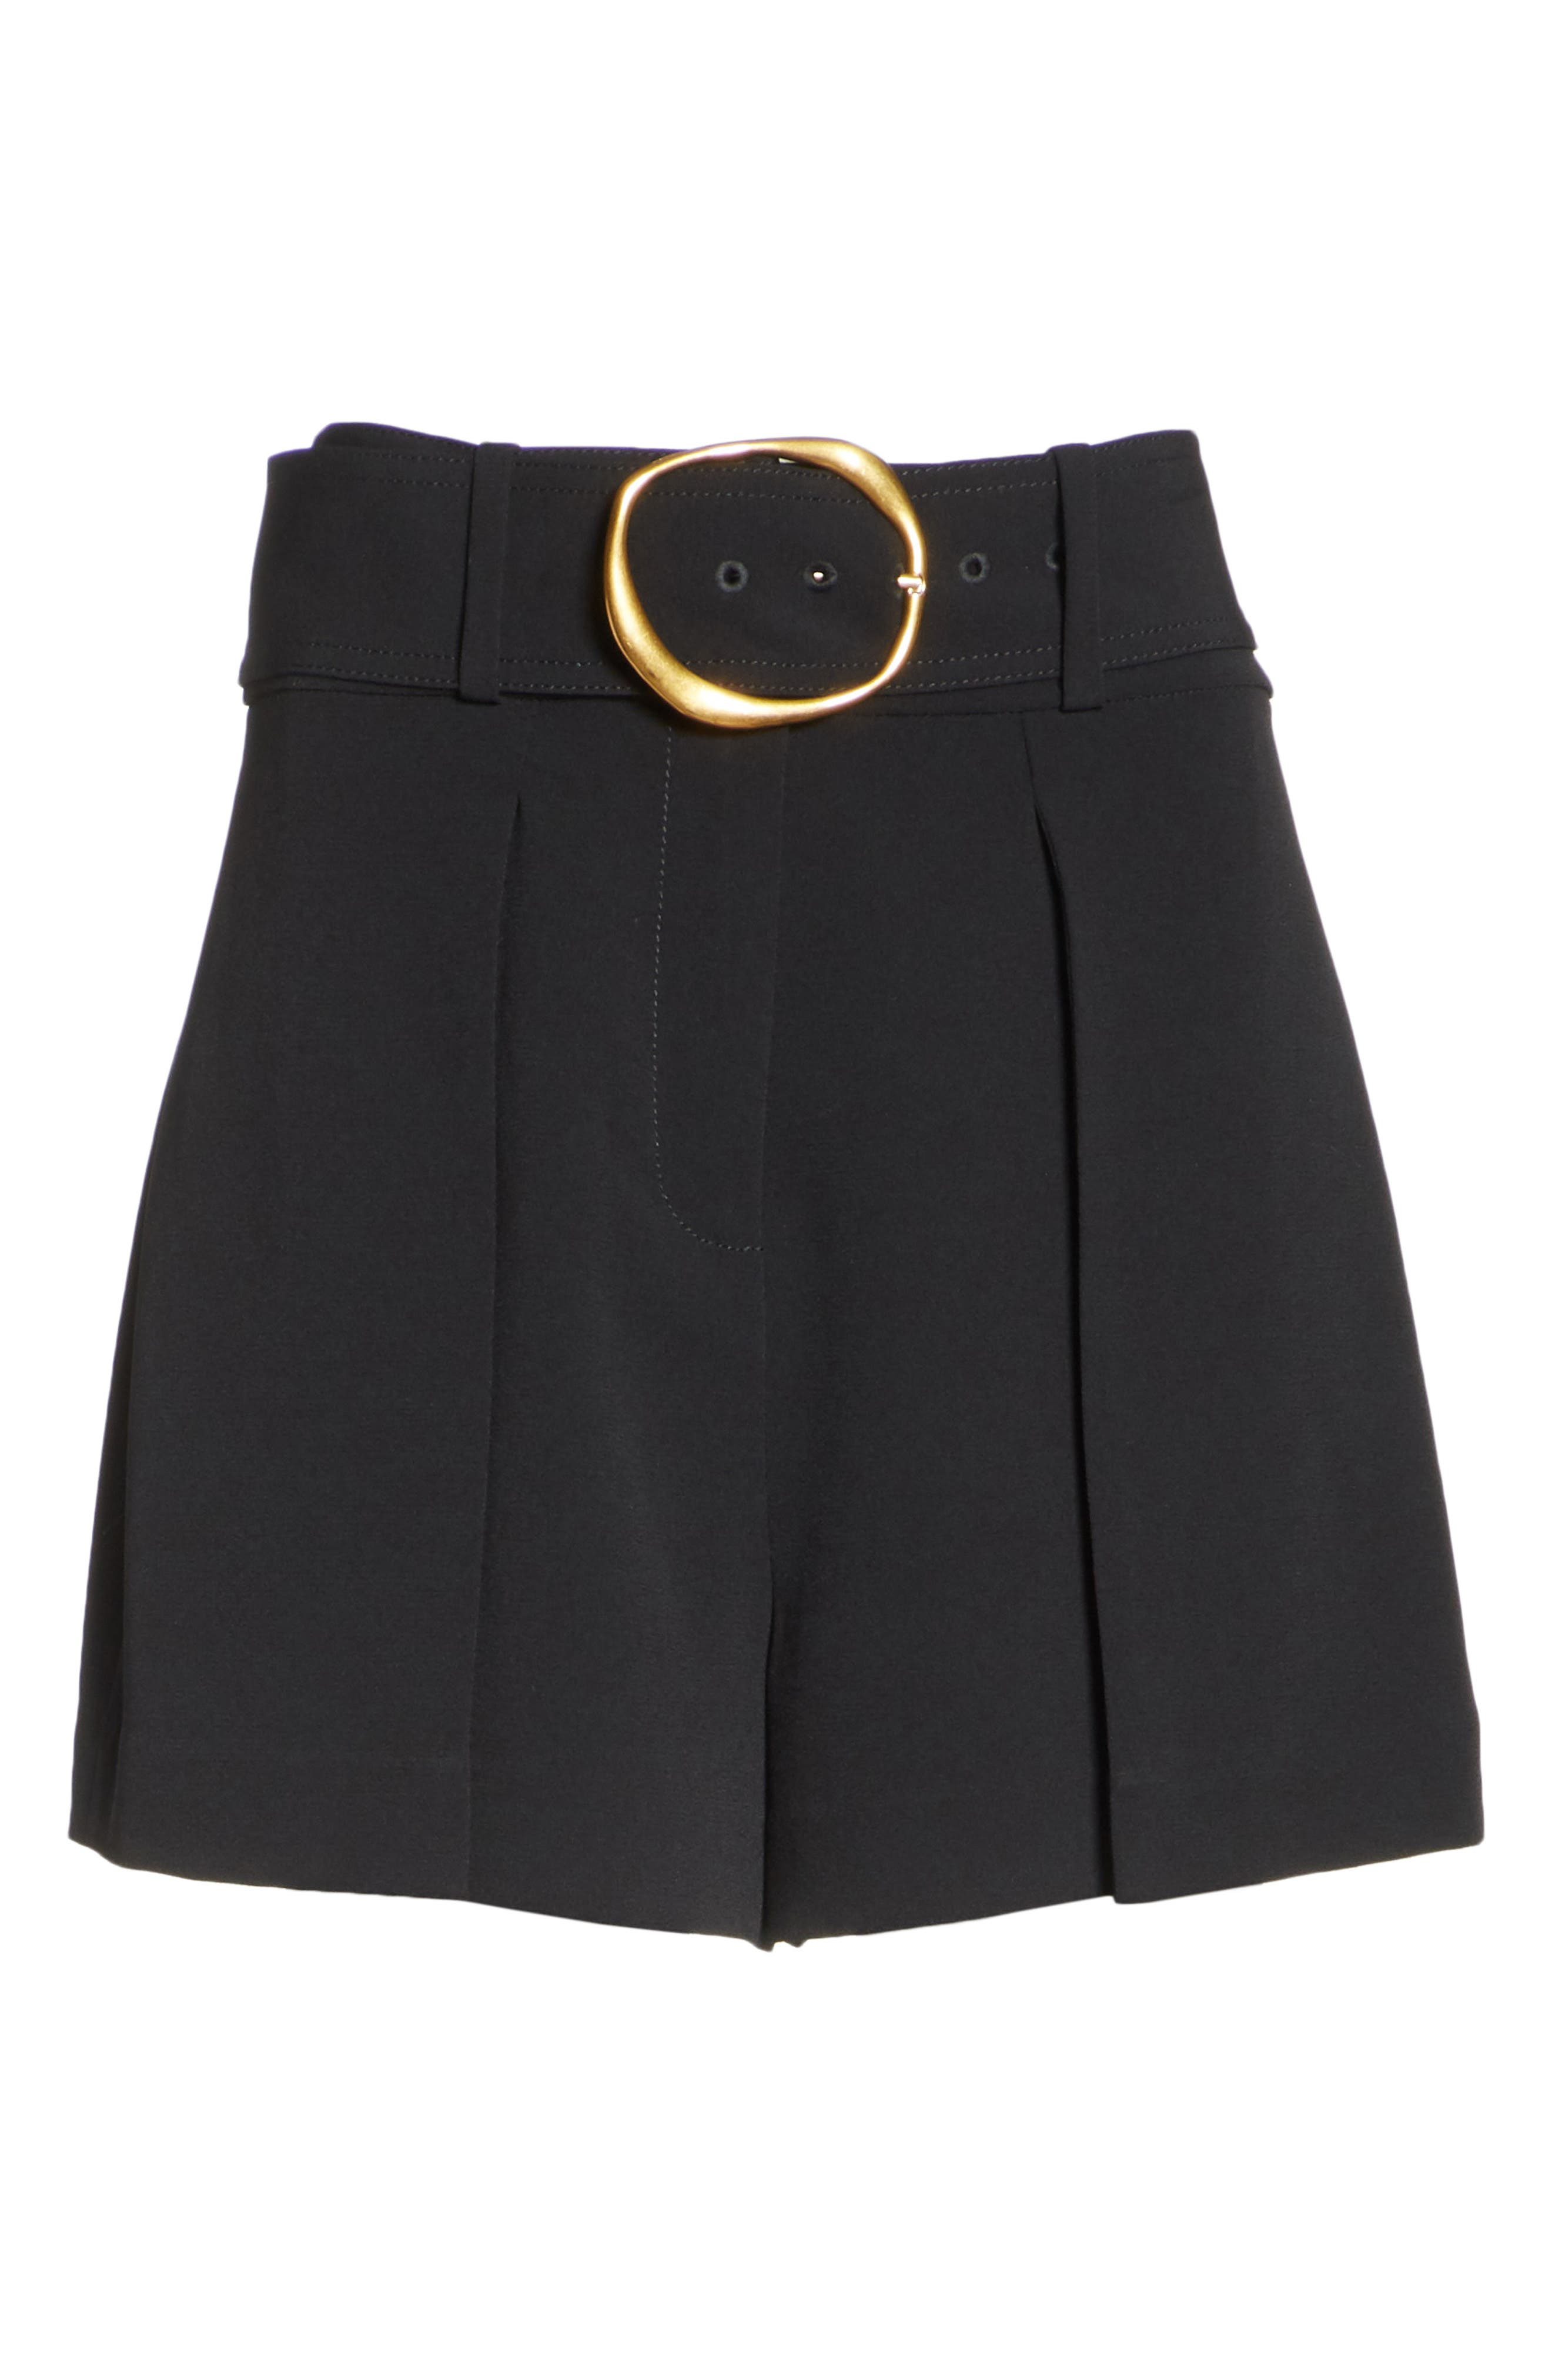 Belted Shorts,                             Alternate thumbnail 6, color,                             001